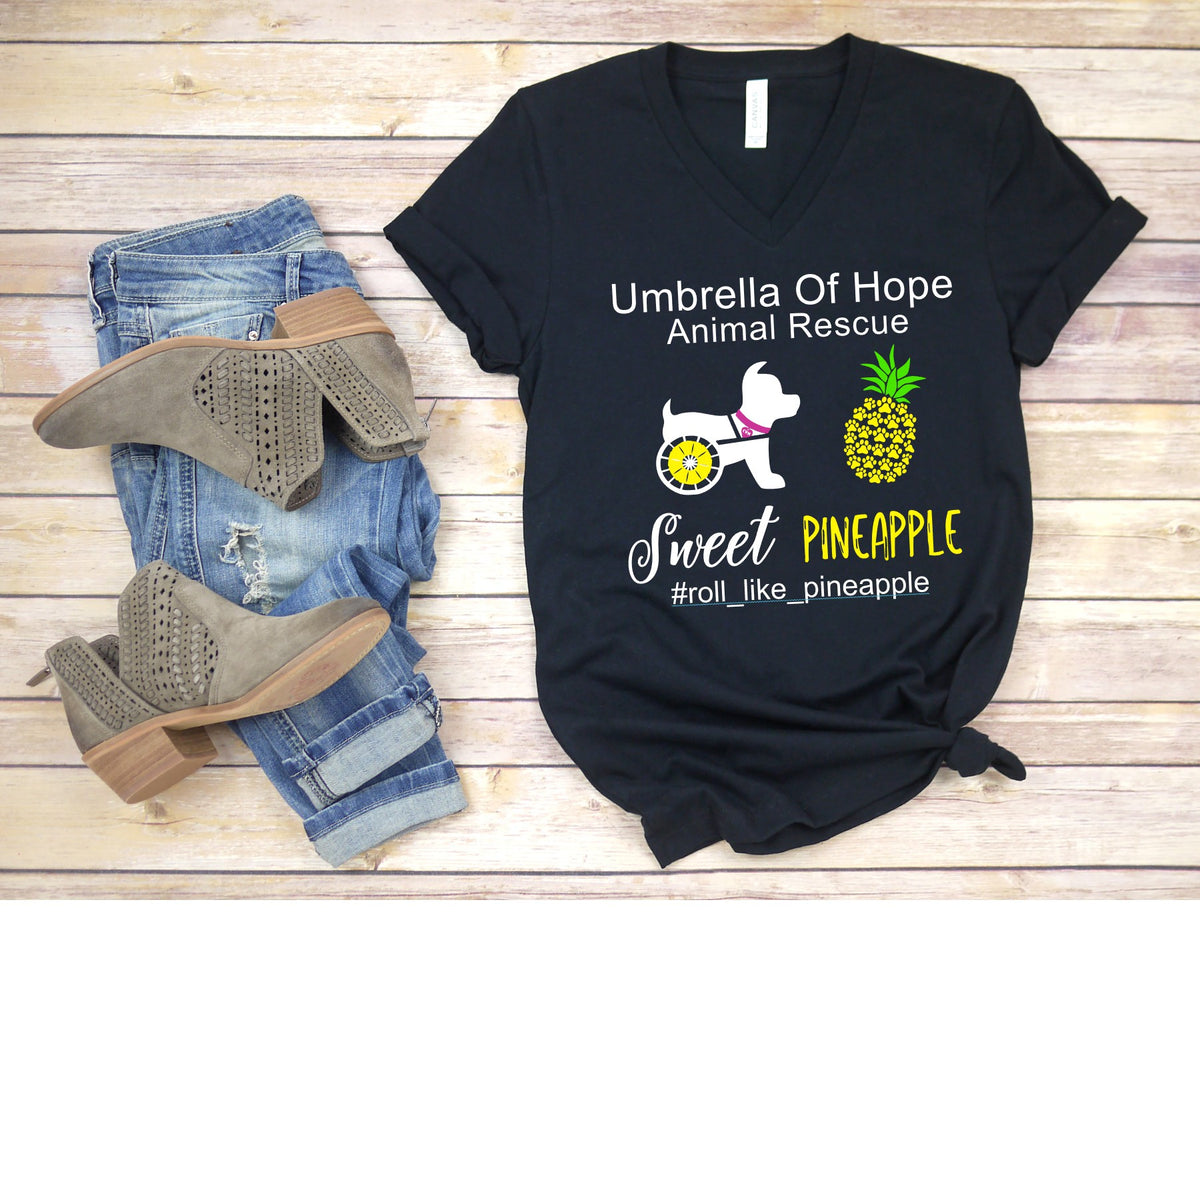 Sweet Pineapple Umbrella of Hope Relaxed Fit V-Neck